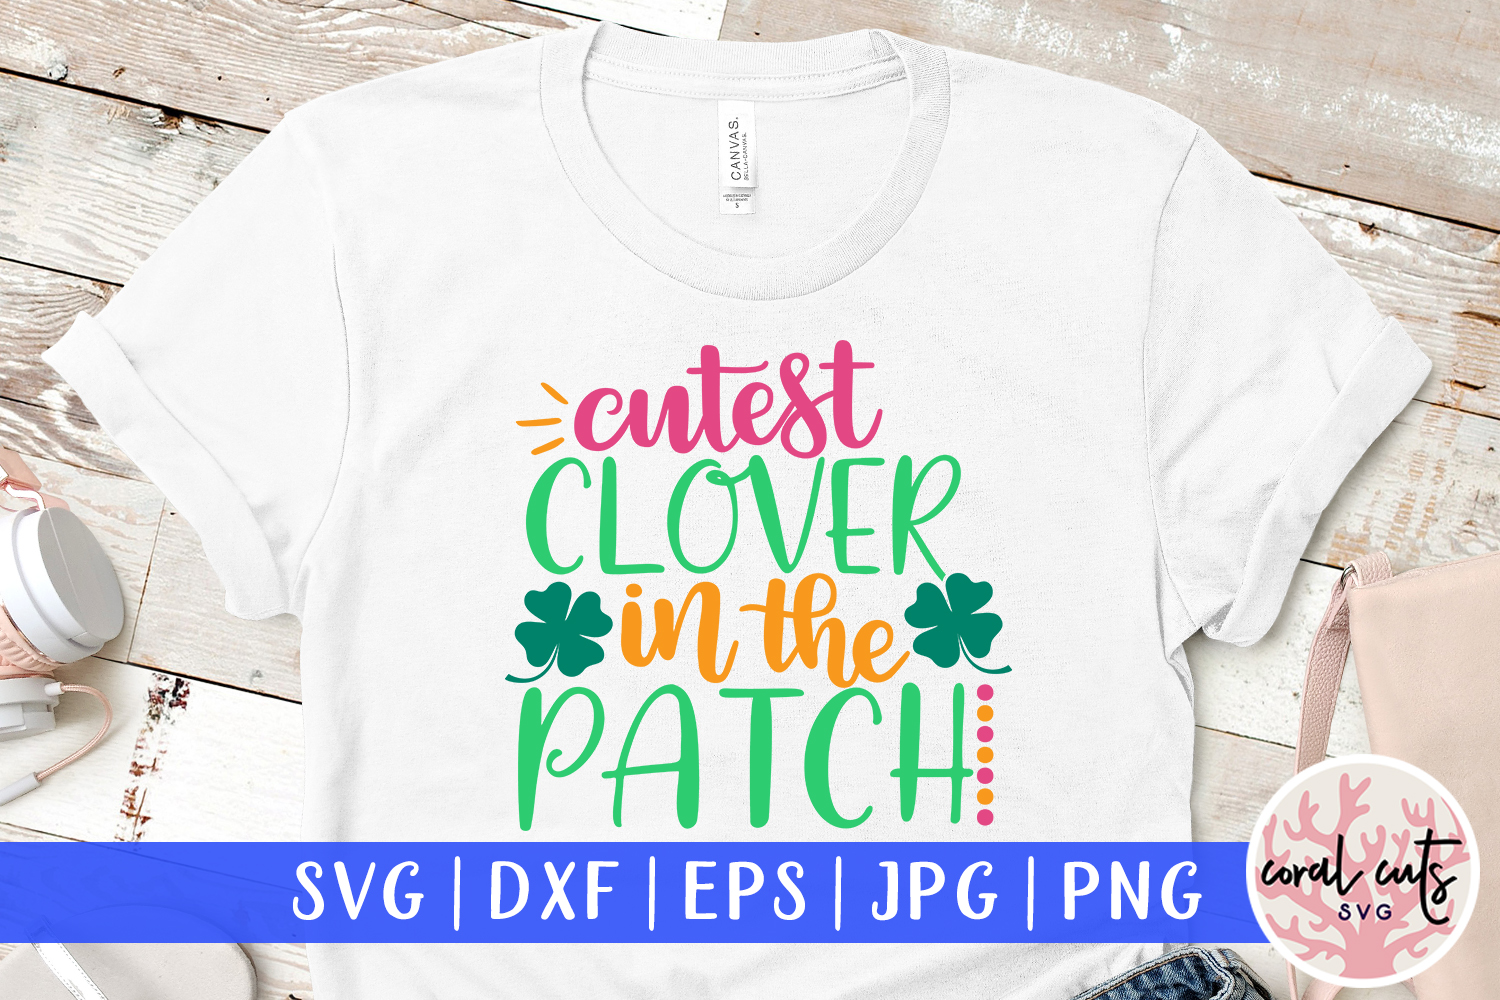 Cutest clover in the patch - St. Patrick's Day SVG EPS DXF example image 1